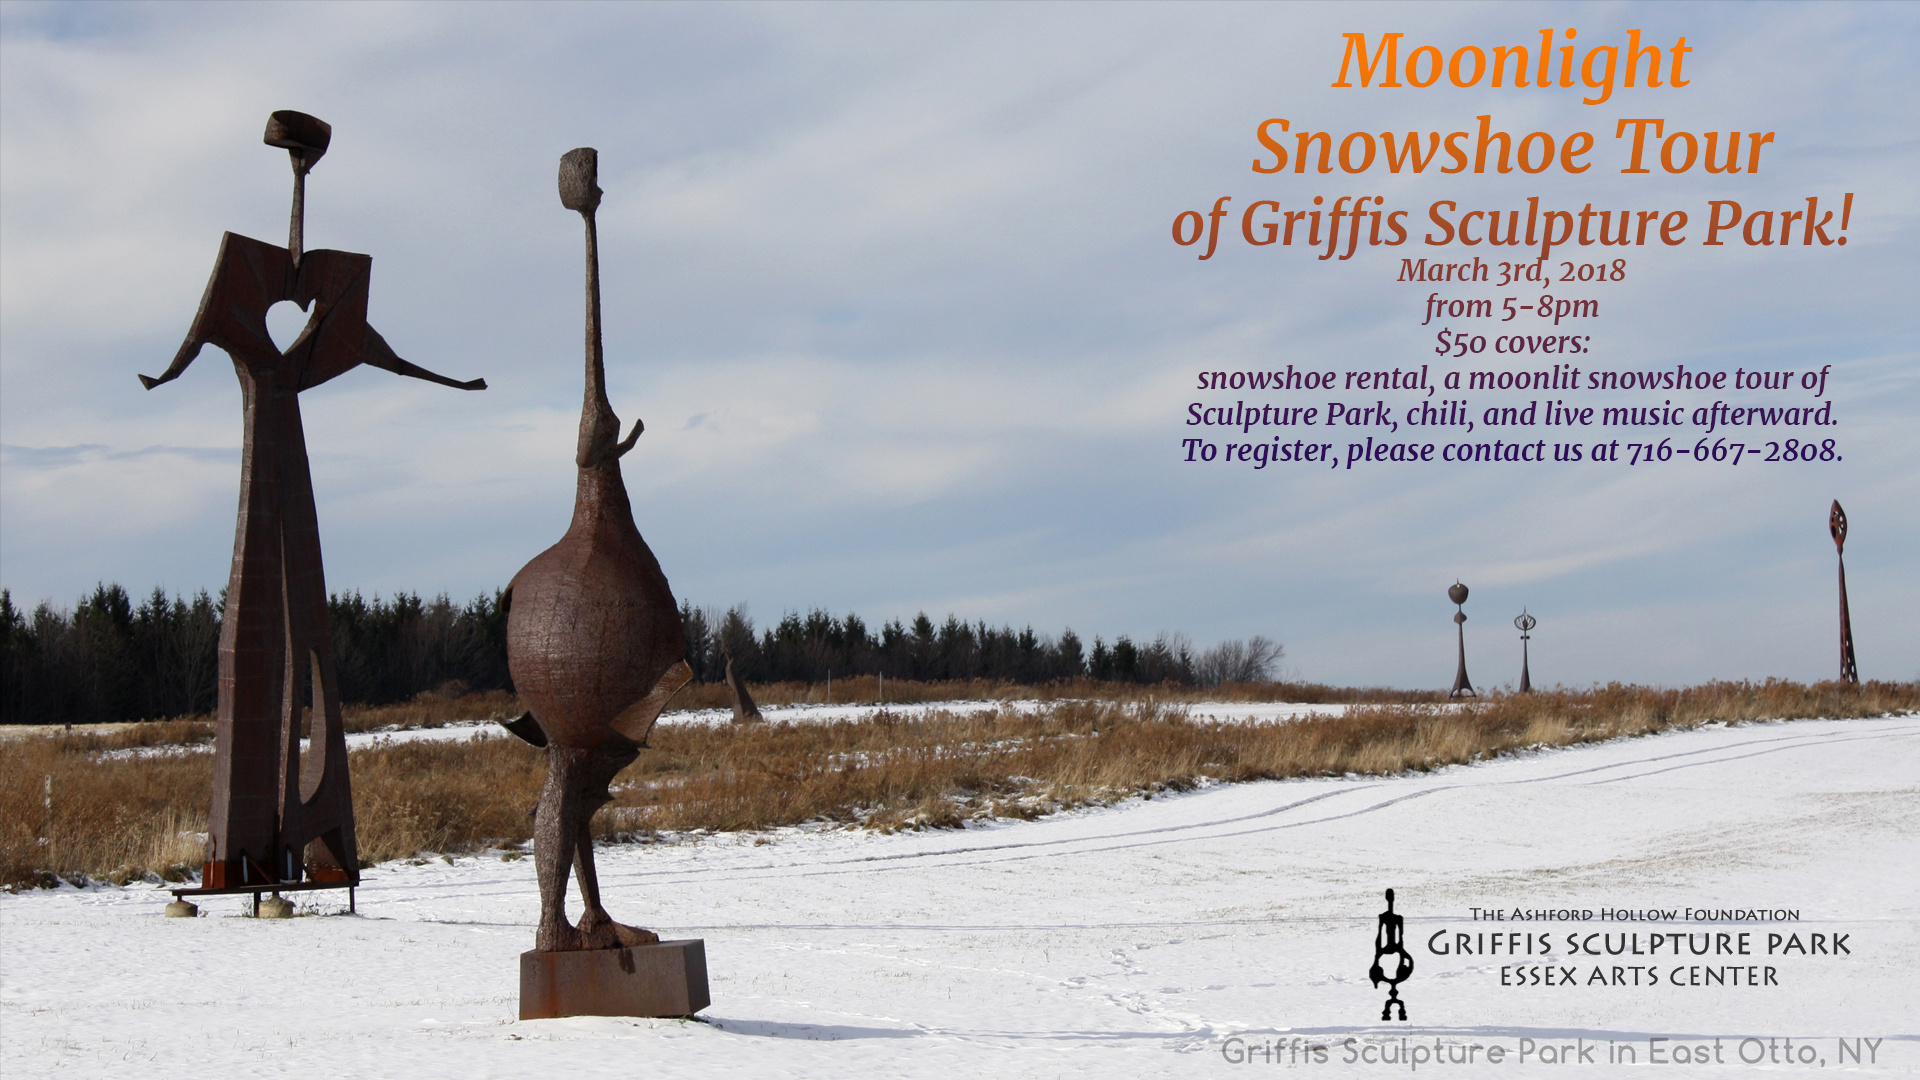 Moonlight Snowshoe Tour of Griffis Sculpture Park